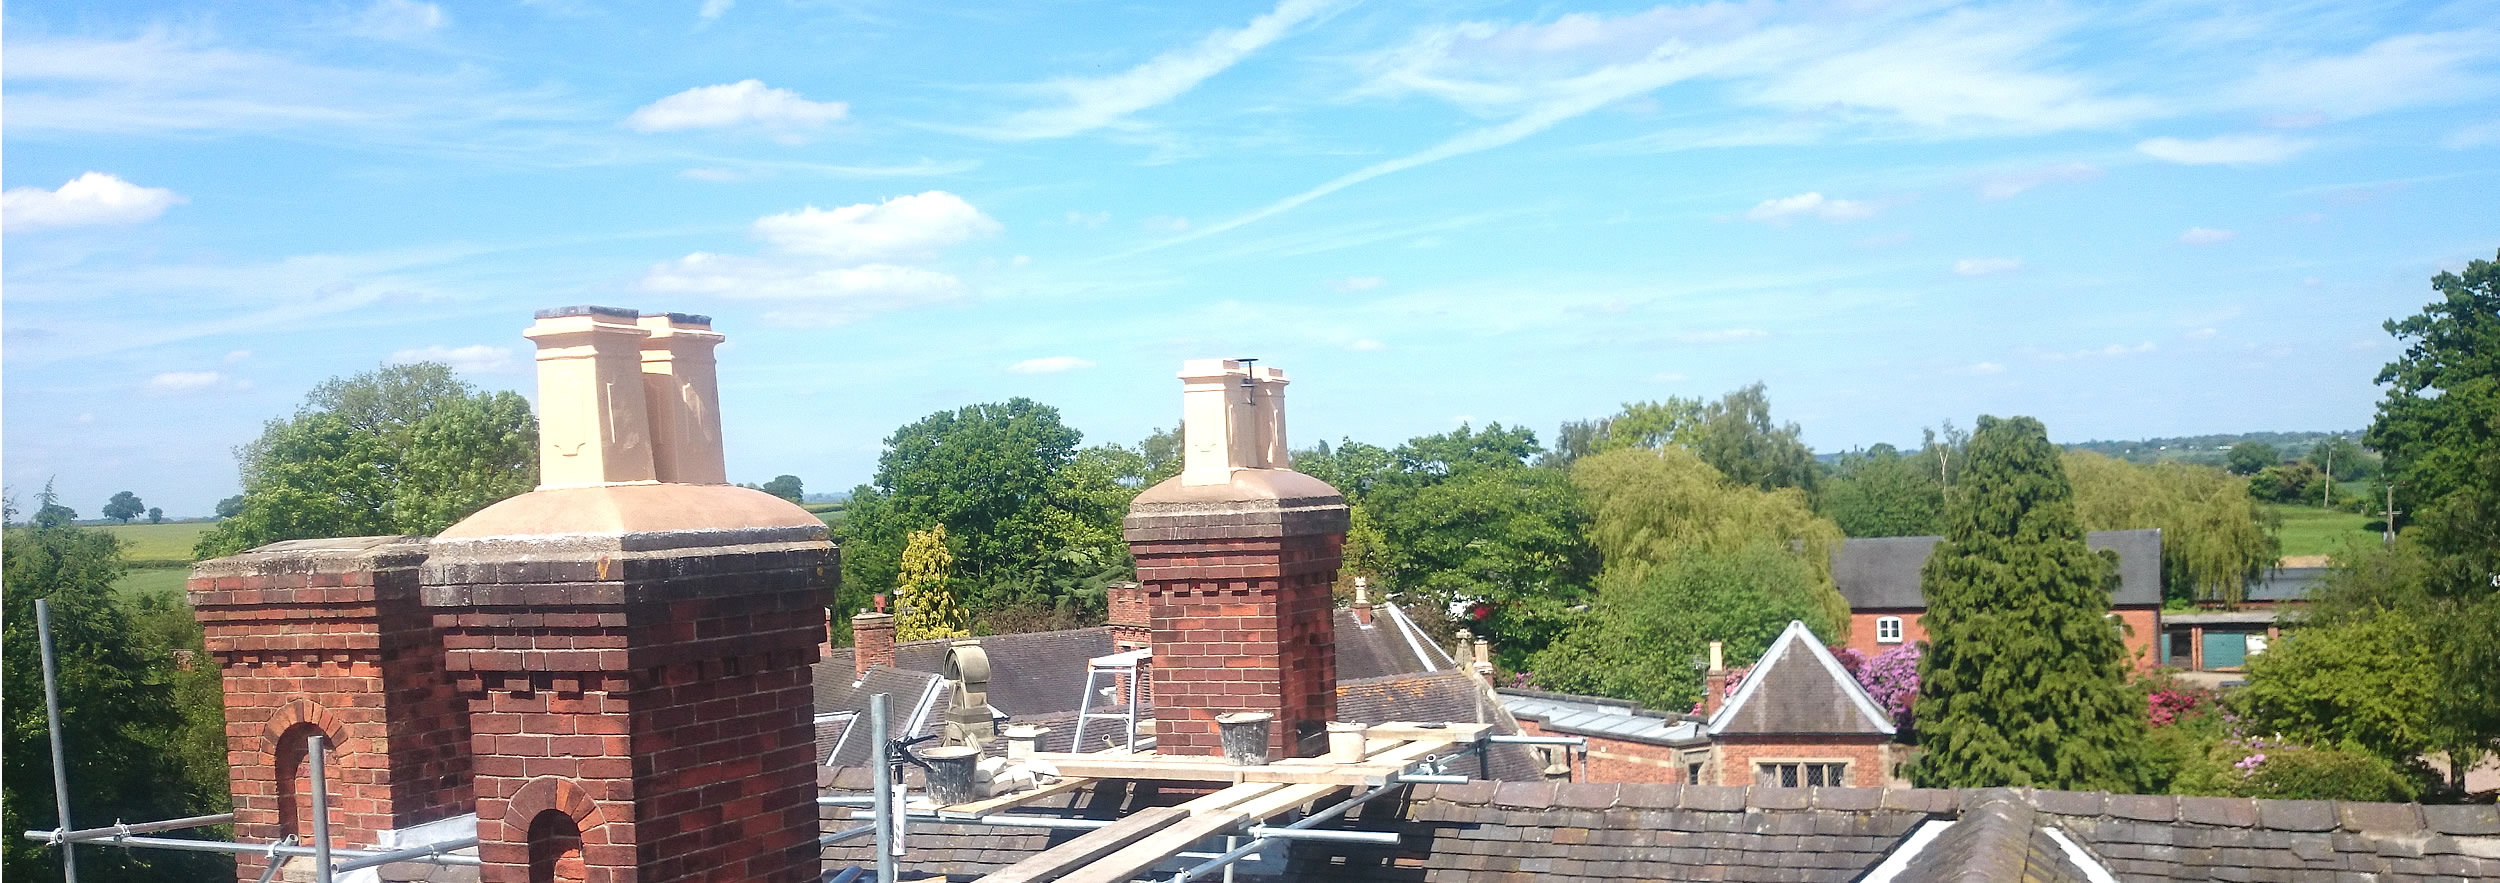 AS Chimneys - your Derbsyhire chimney and fireplace specialist